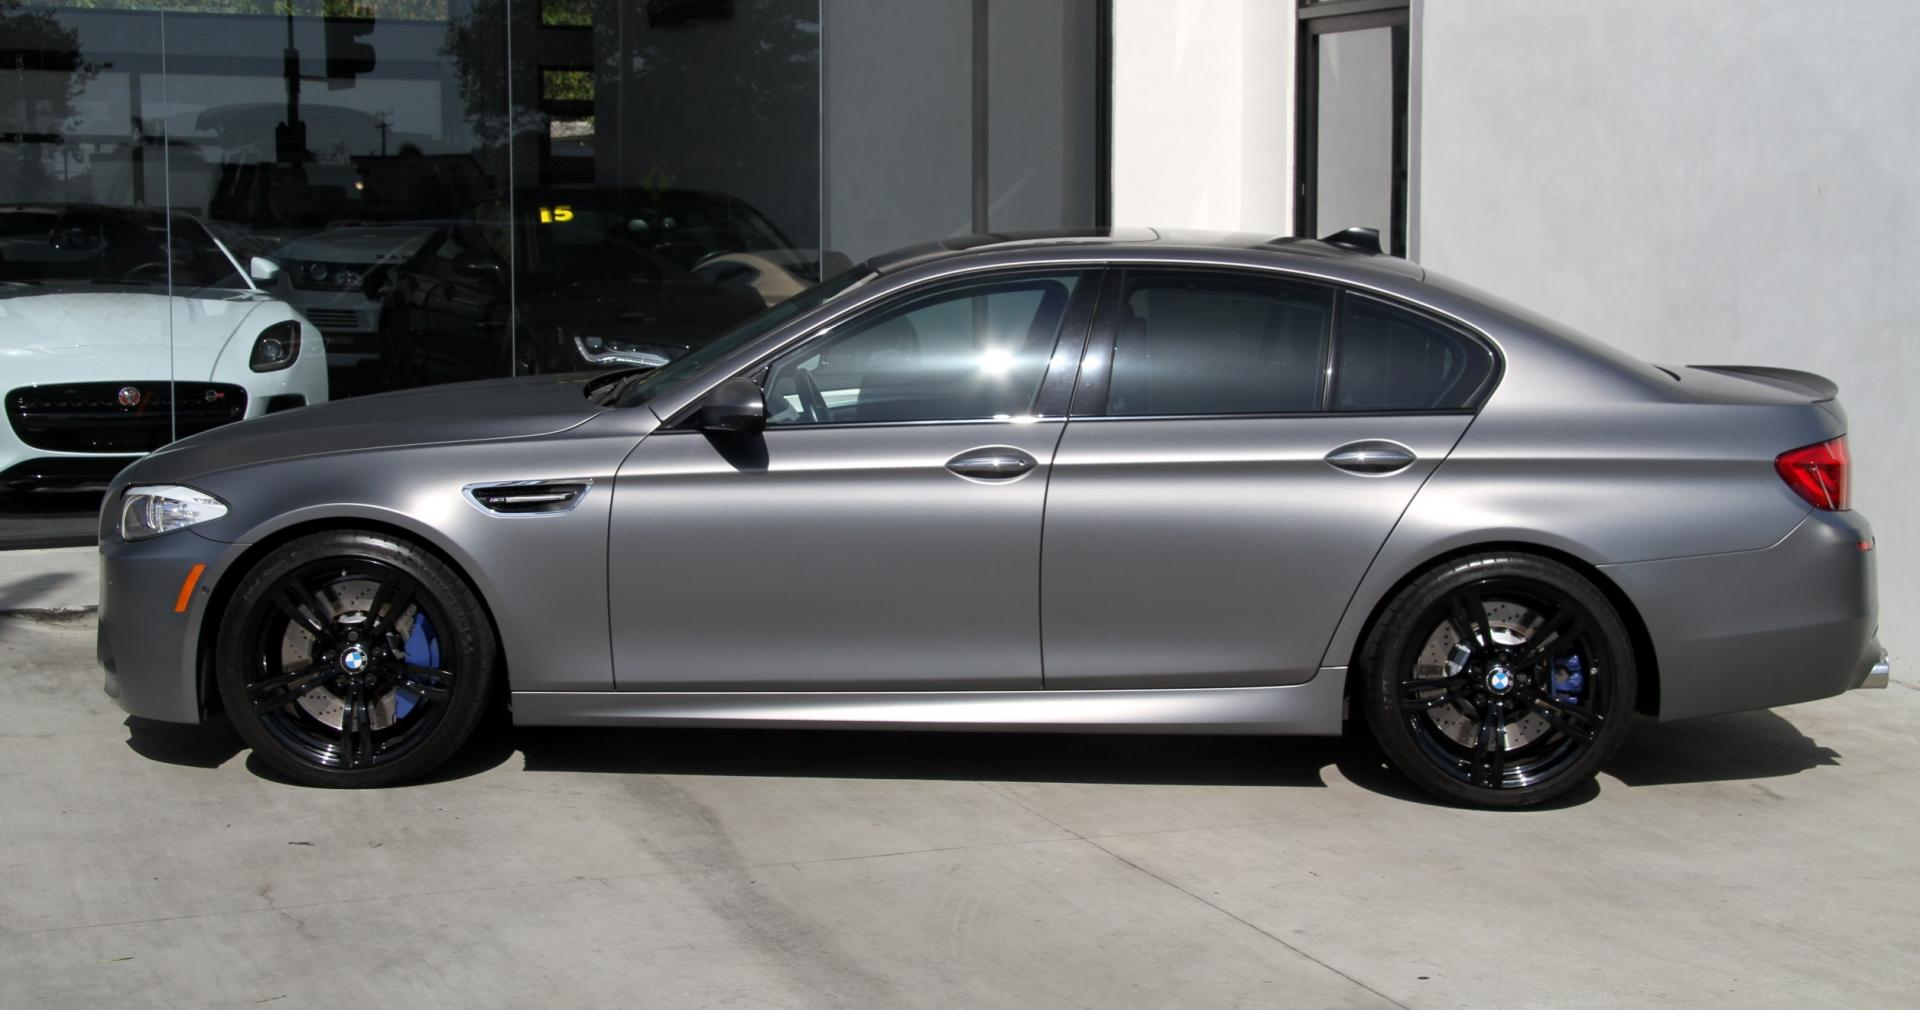 2013 bmw m5 matte paint stock 6008 for sale near. Black Bedroom Furniture Sets. Home Design Ideas